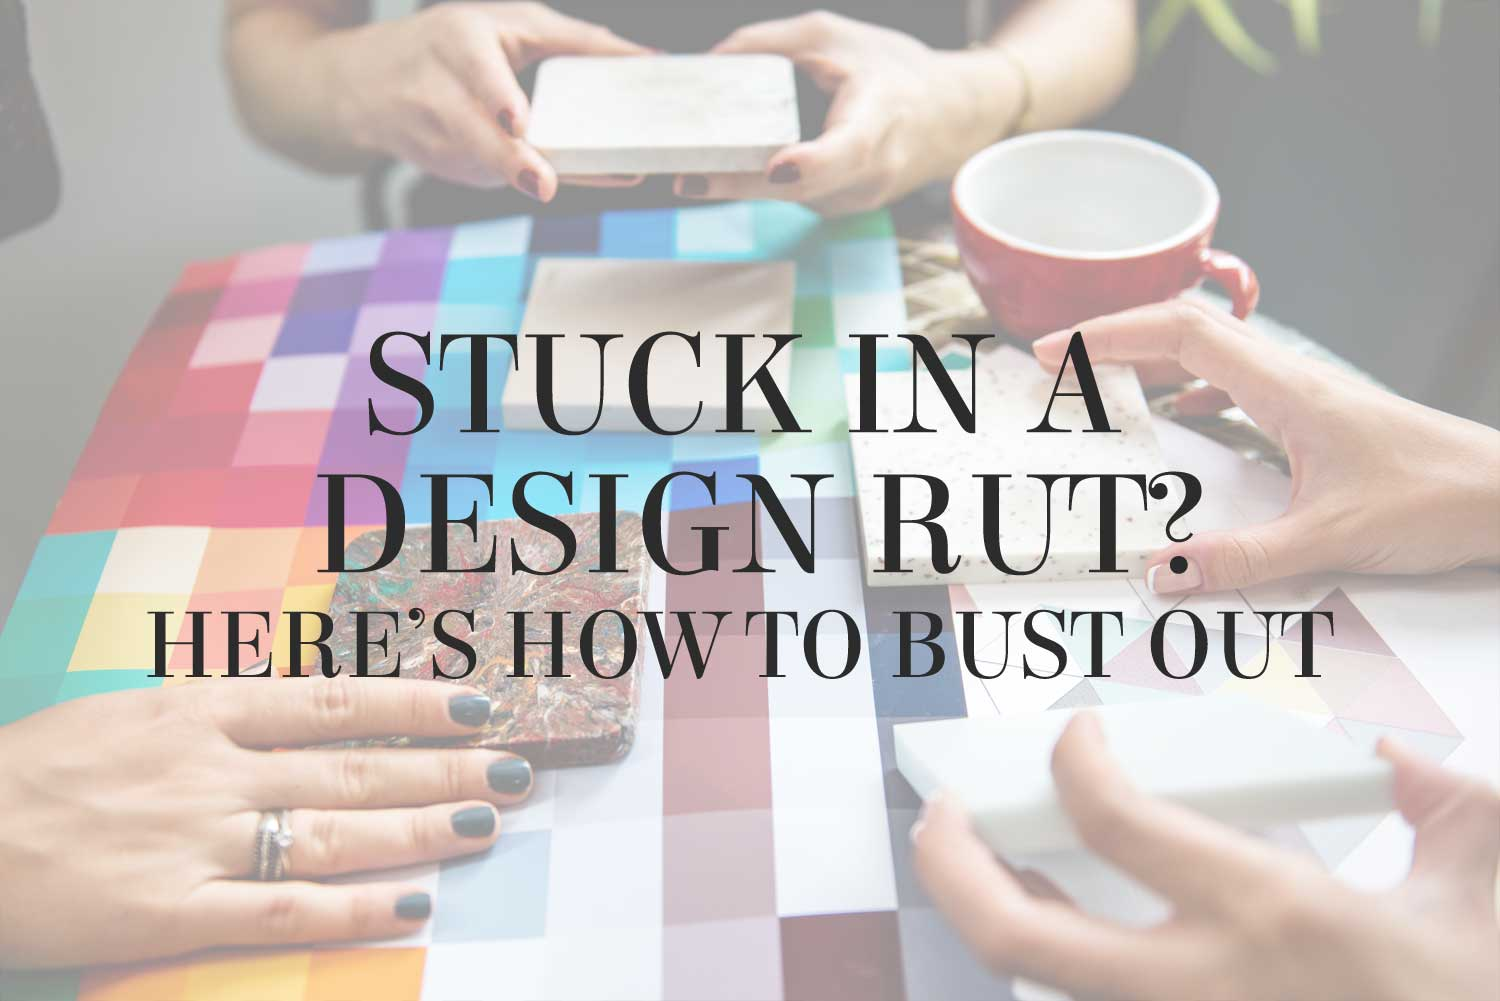 Stuck in a design rut? Interior stylist Lesley Myrick has 3 tips to help you bust out of a decorating slump.